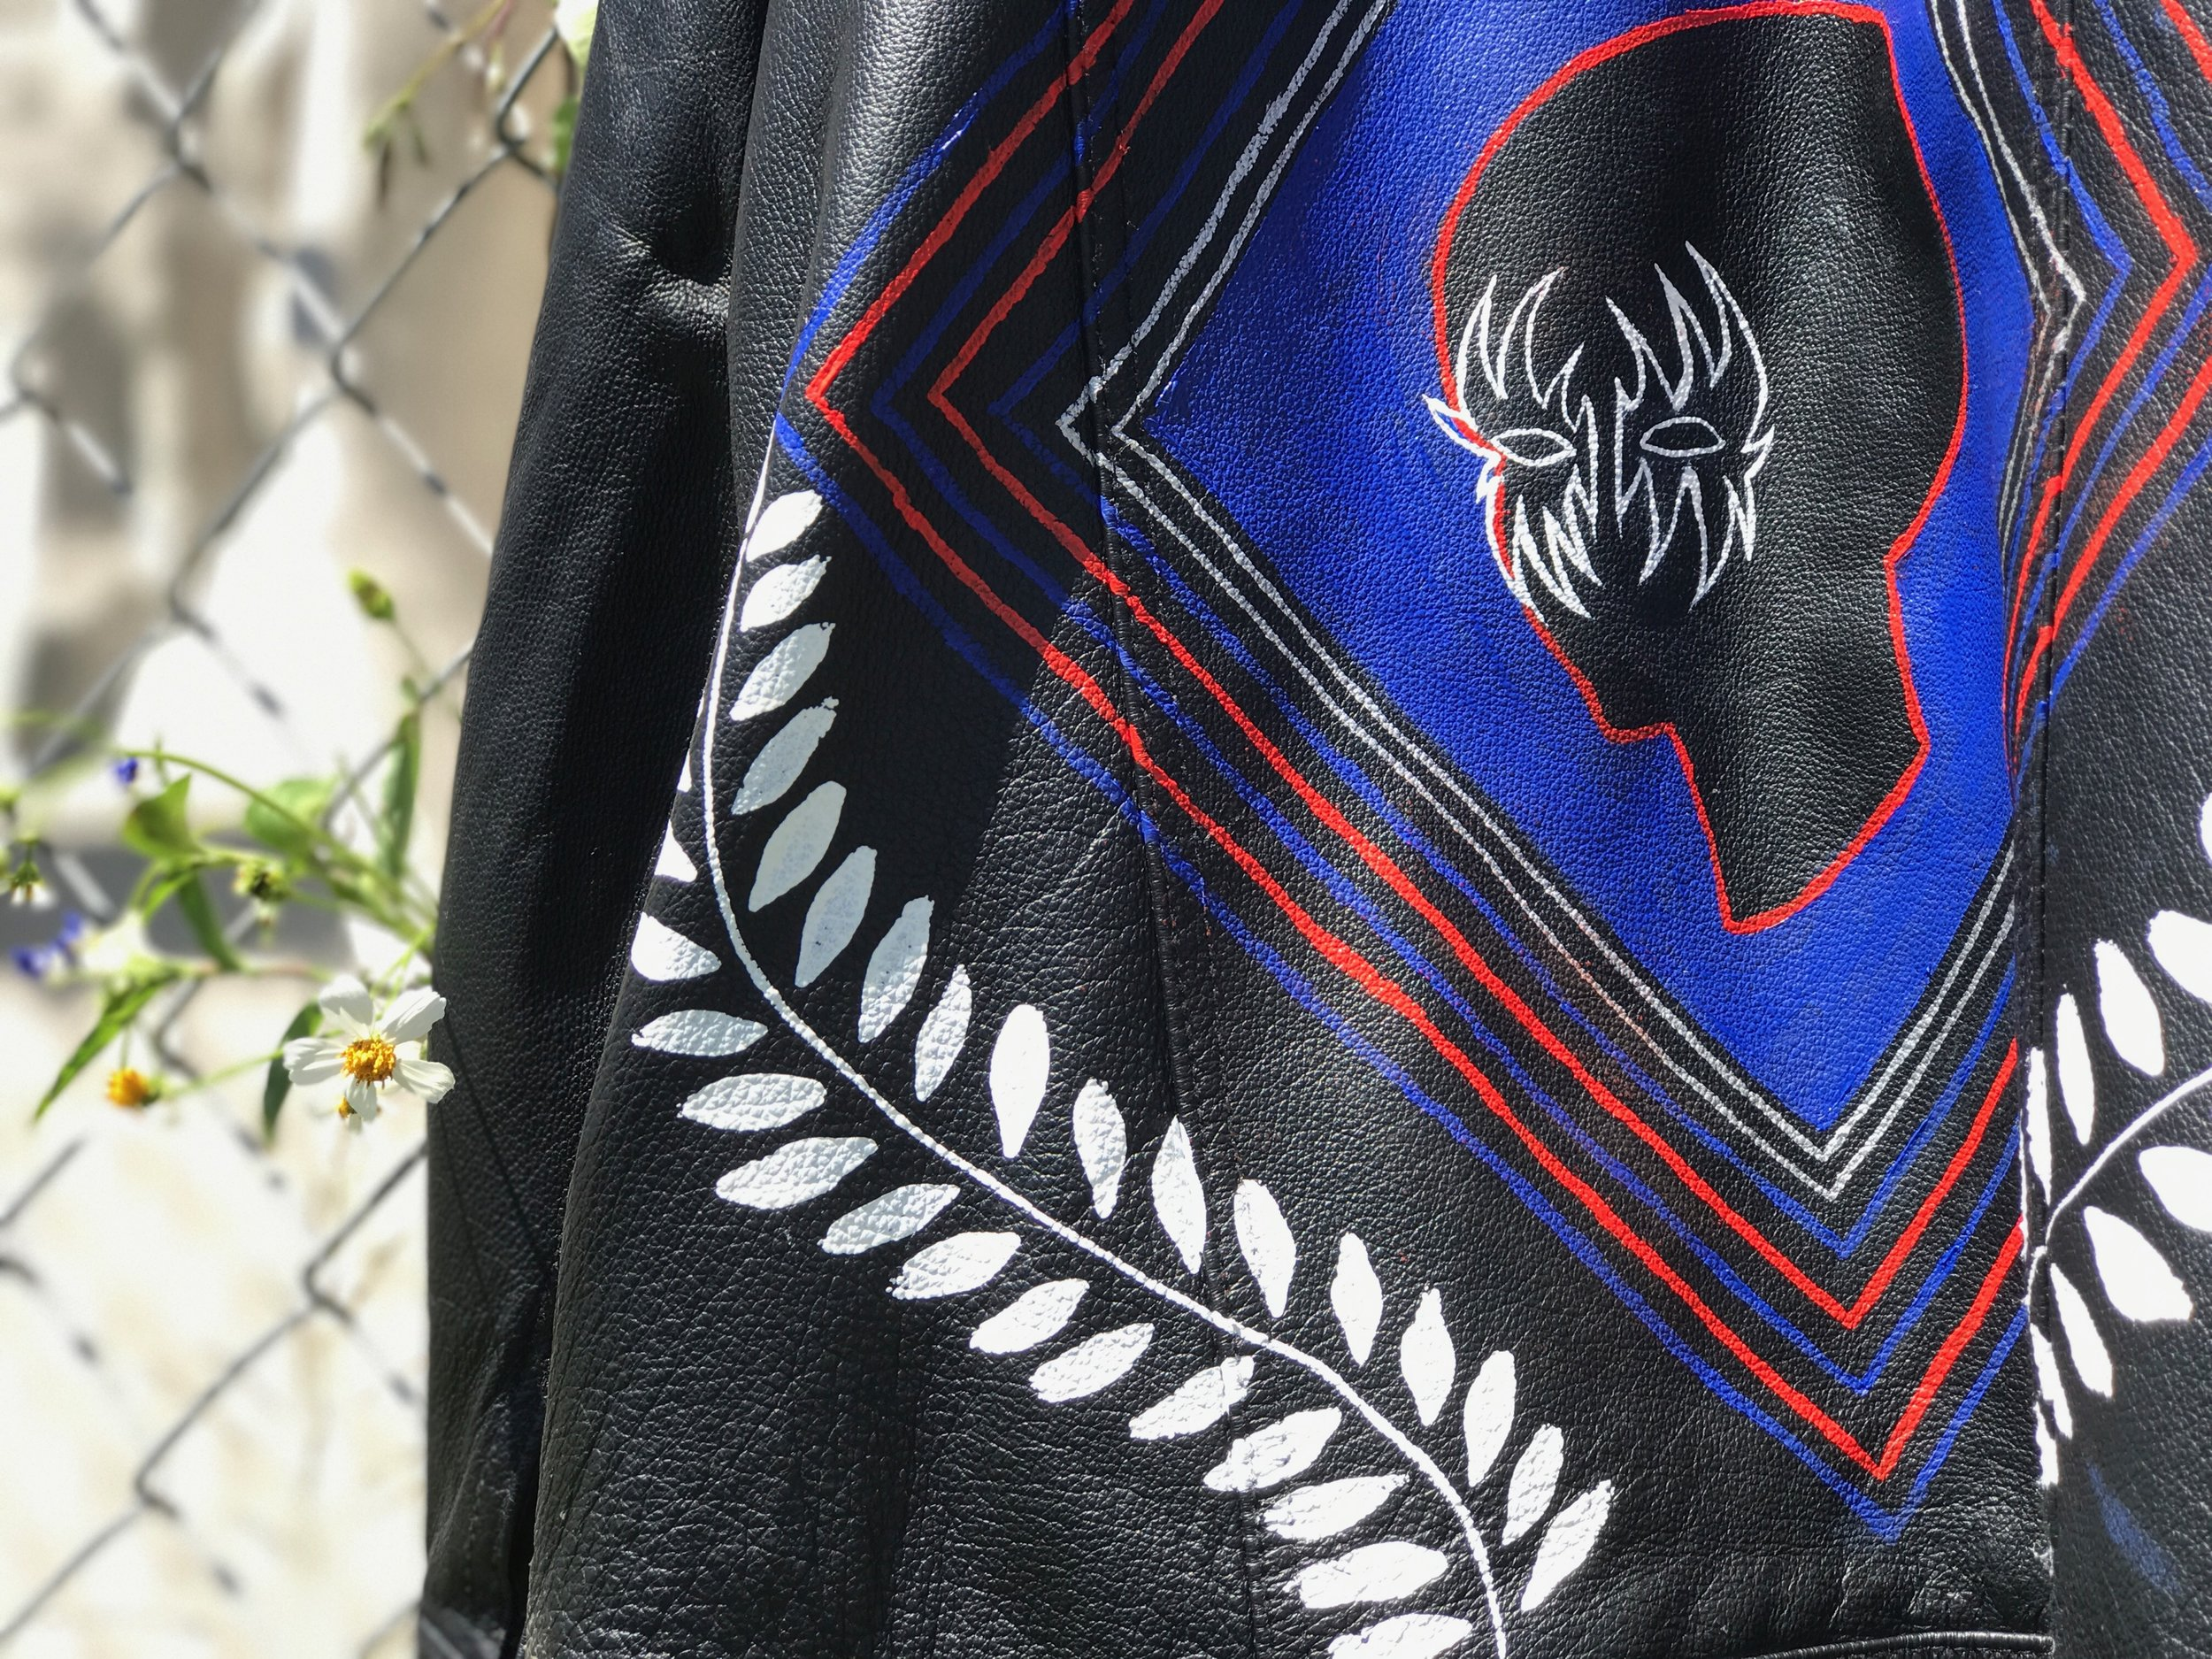 Paint on vintage leather jacket, 2017.